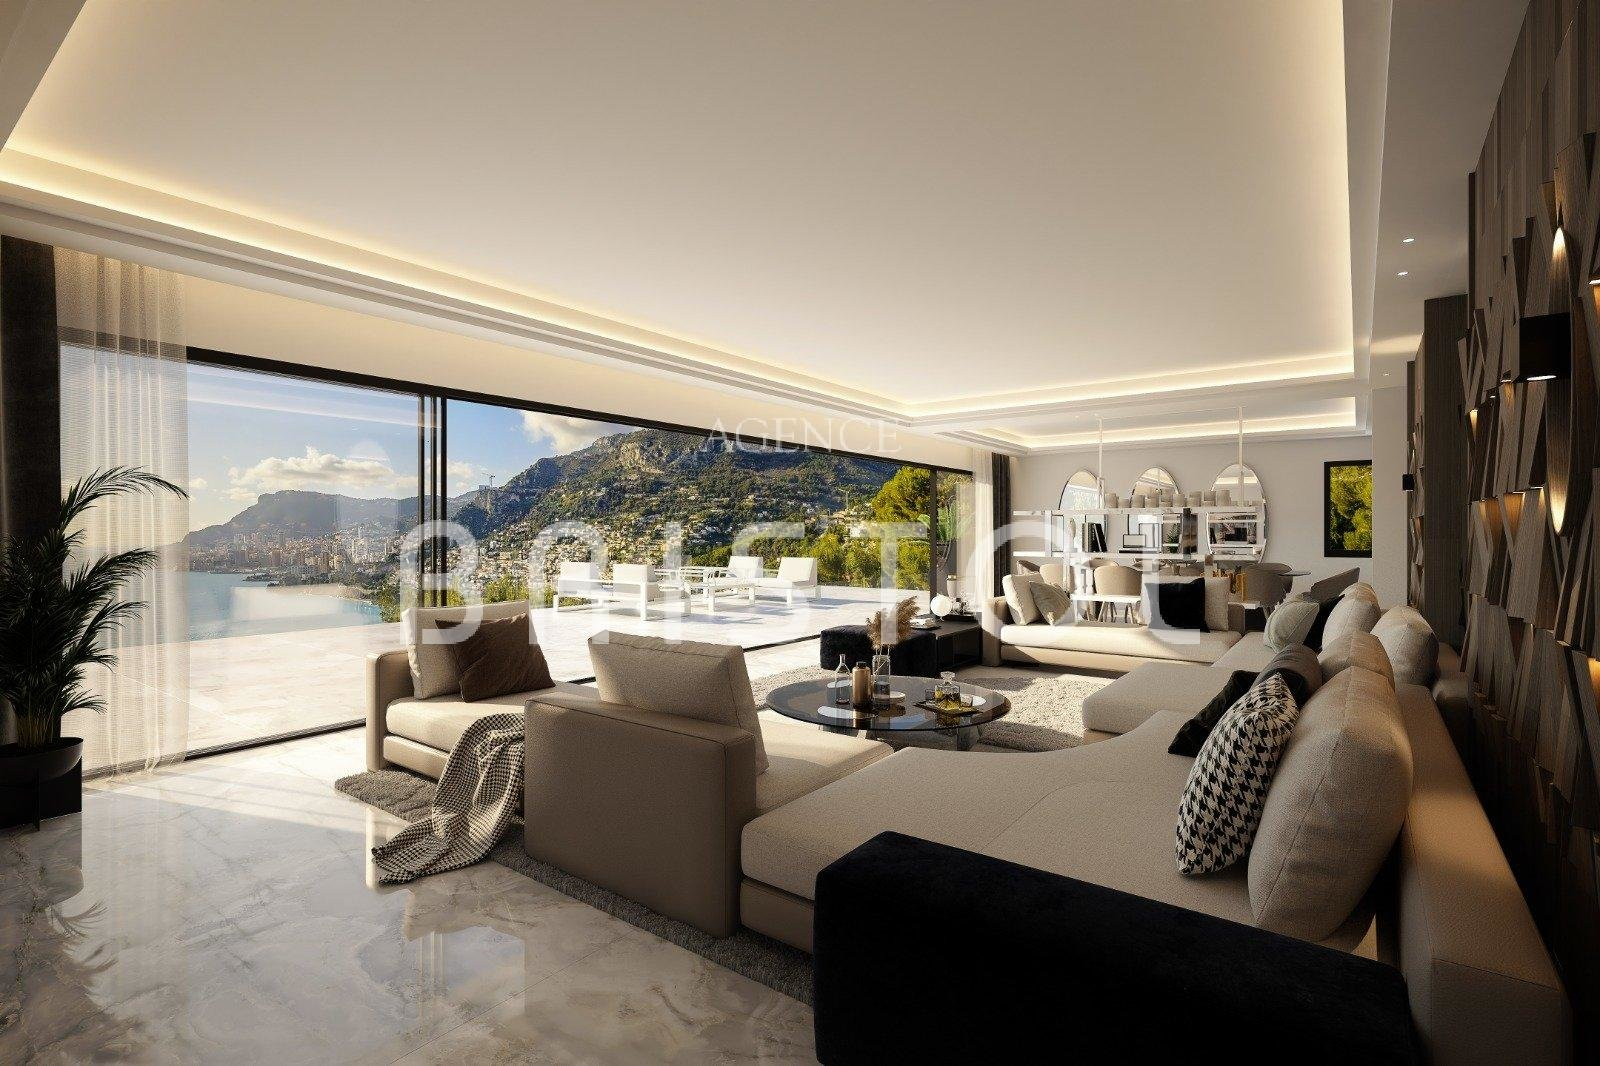 Project of an exceptional contemporary villa in Roquebrune Cap Martin